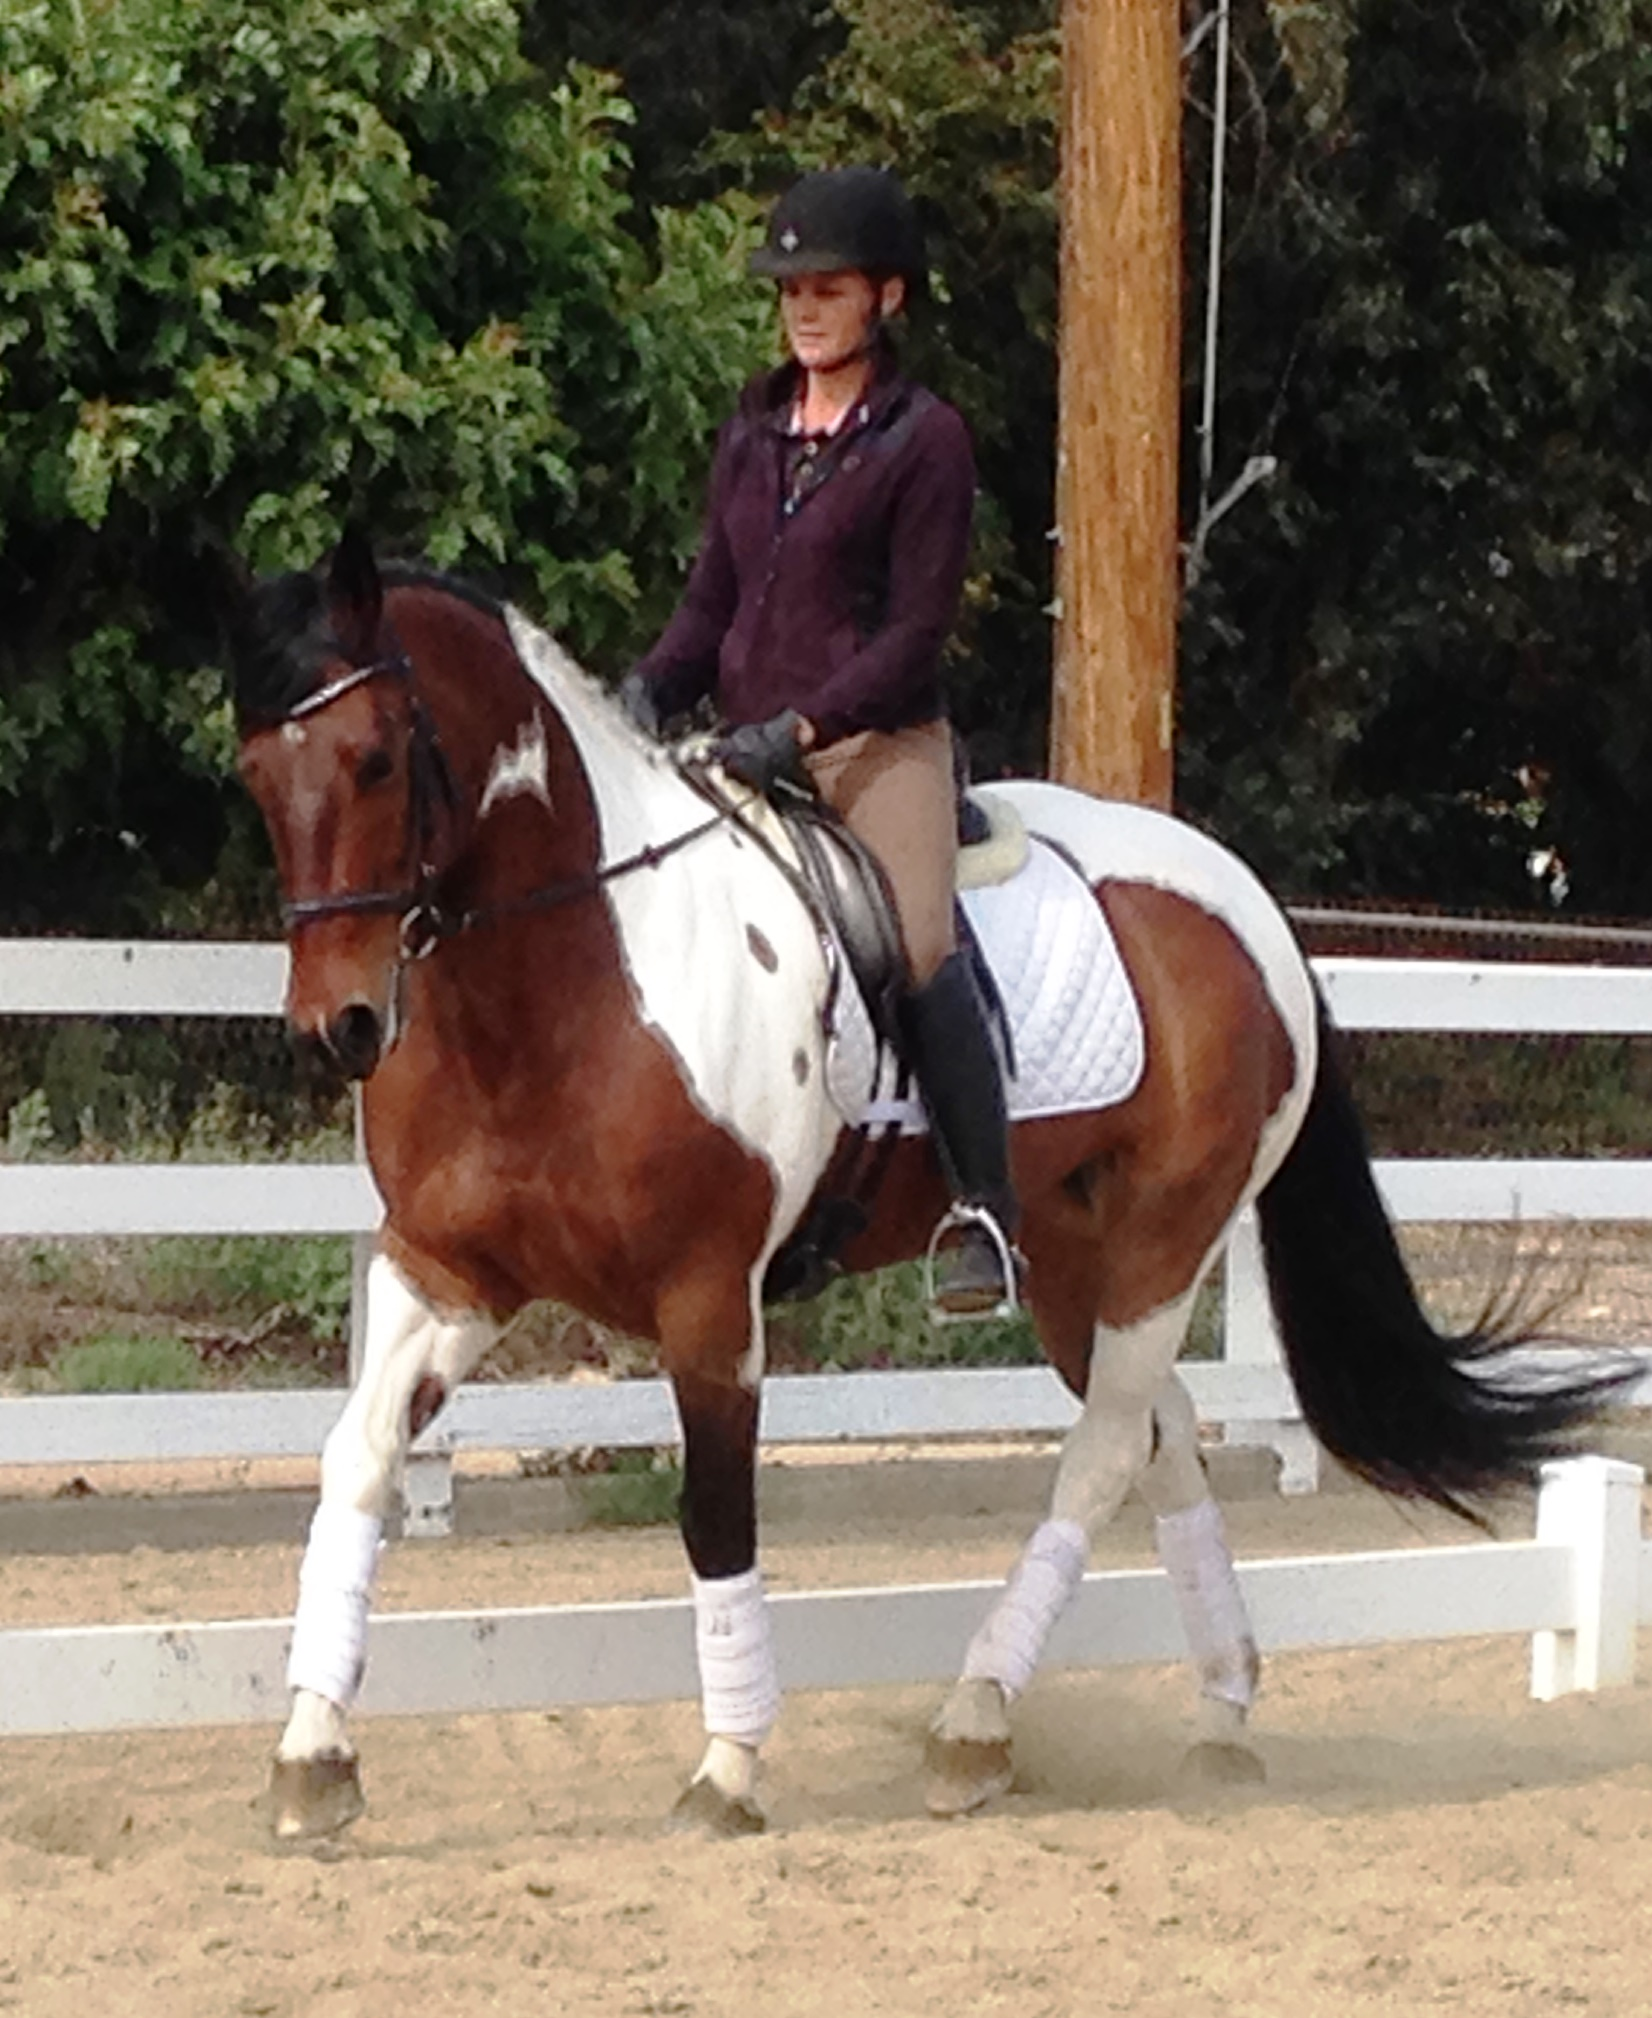 Kira dressage horse sales California